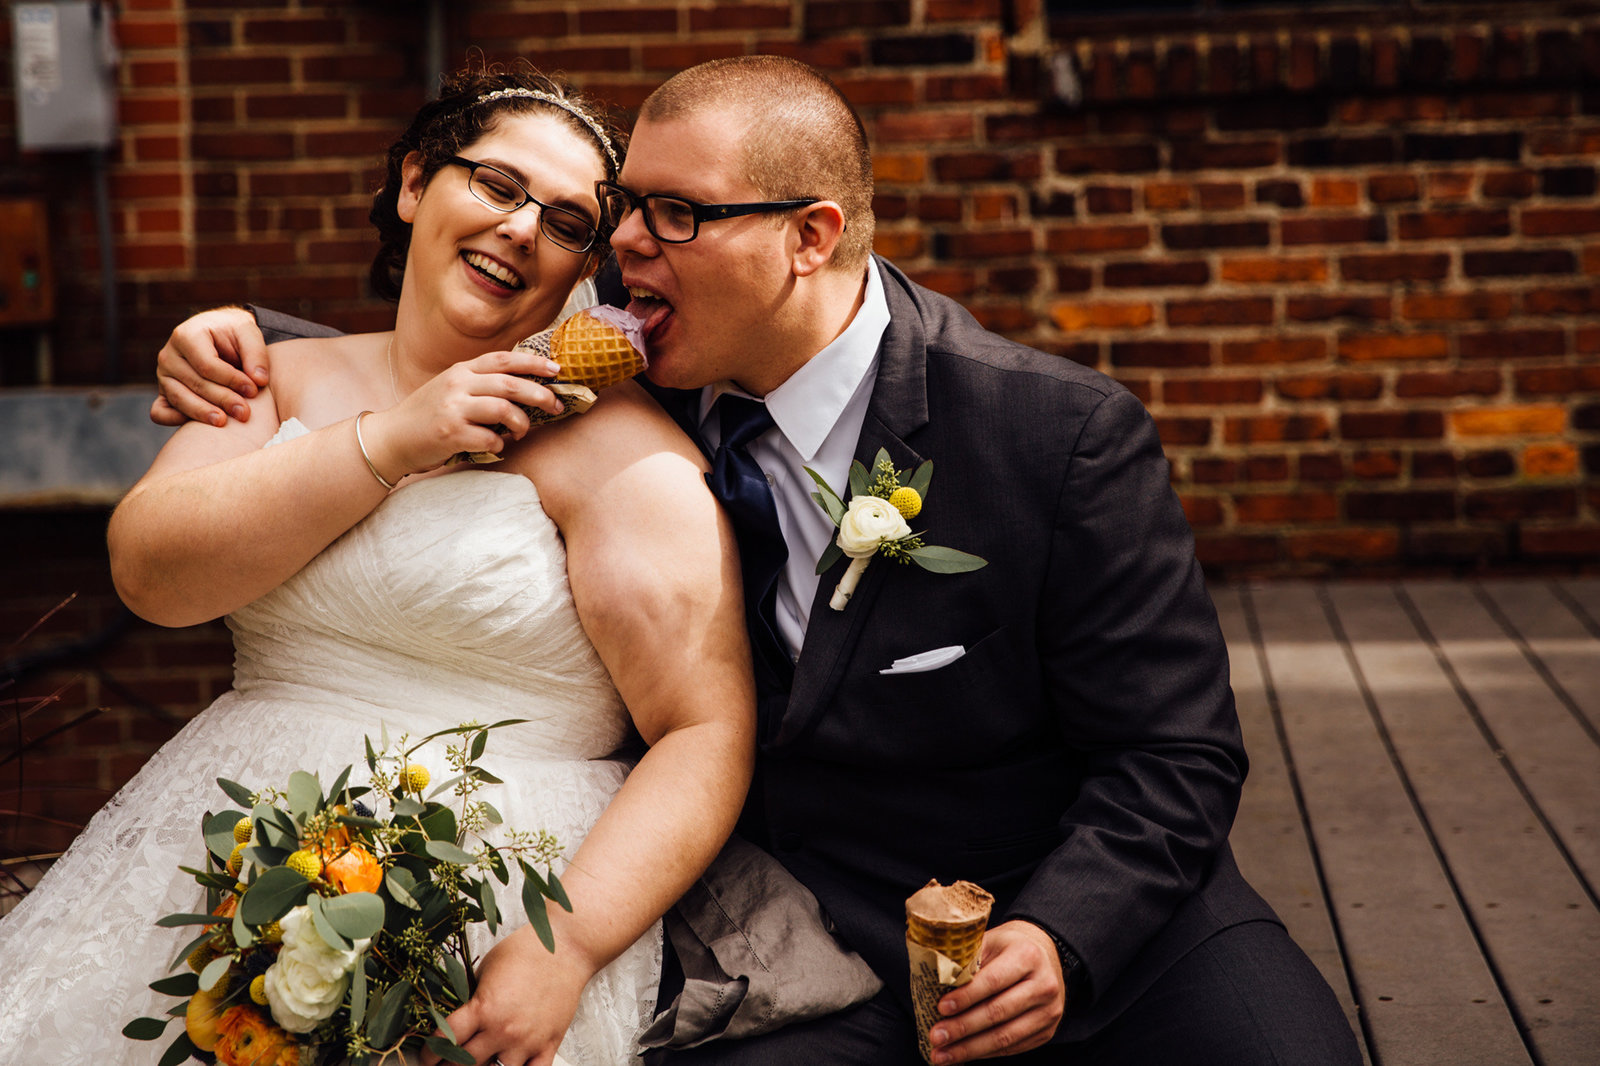 SaraLane-And-Stevie-Wedding-Photography-Erica-Cody-Brentwood-Tennessee-LRE-85